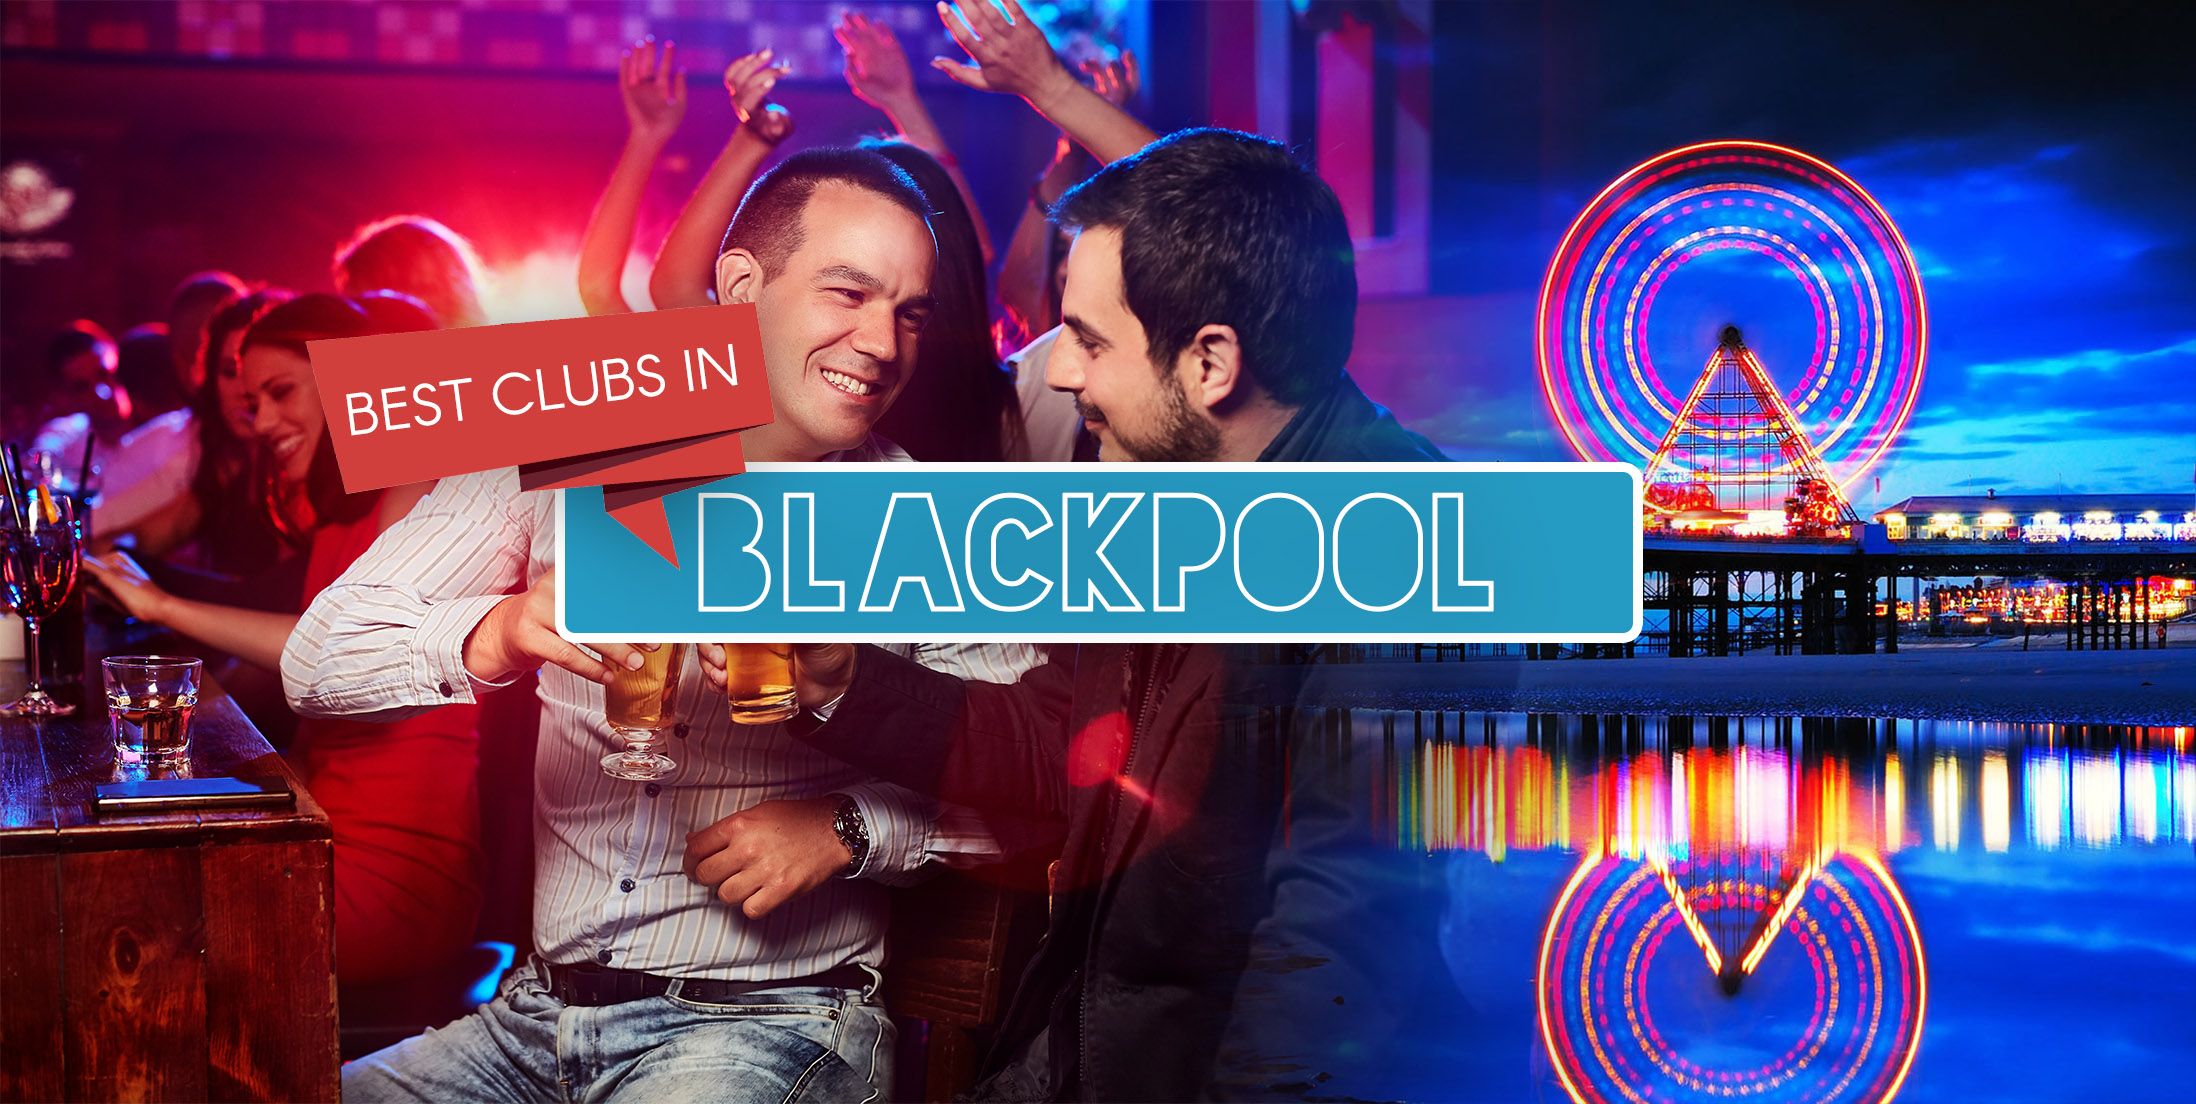 Best Clubs in Blackpool